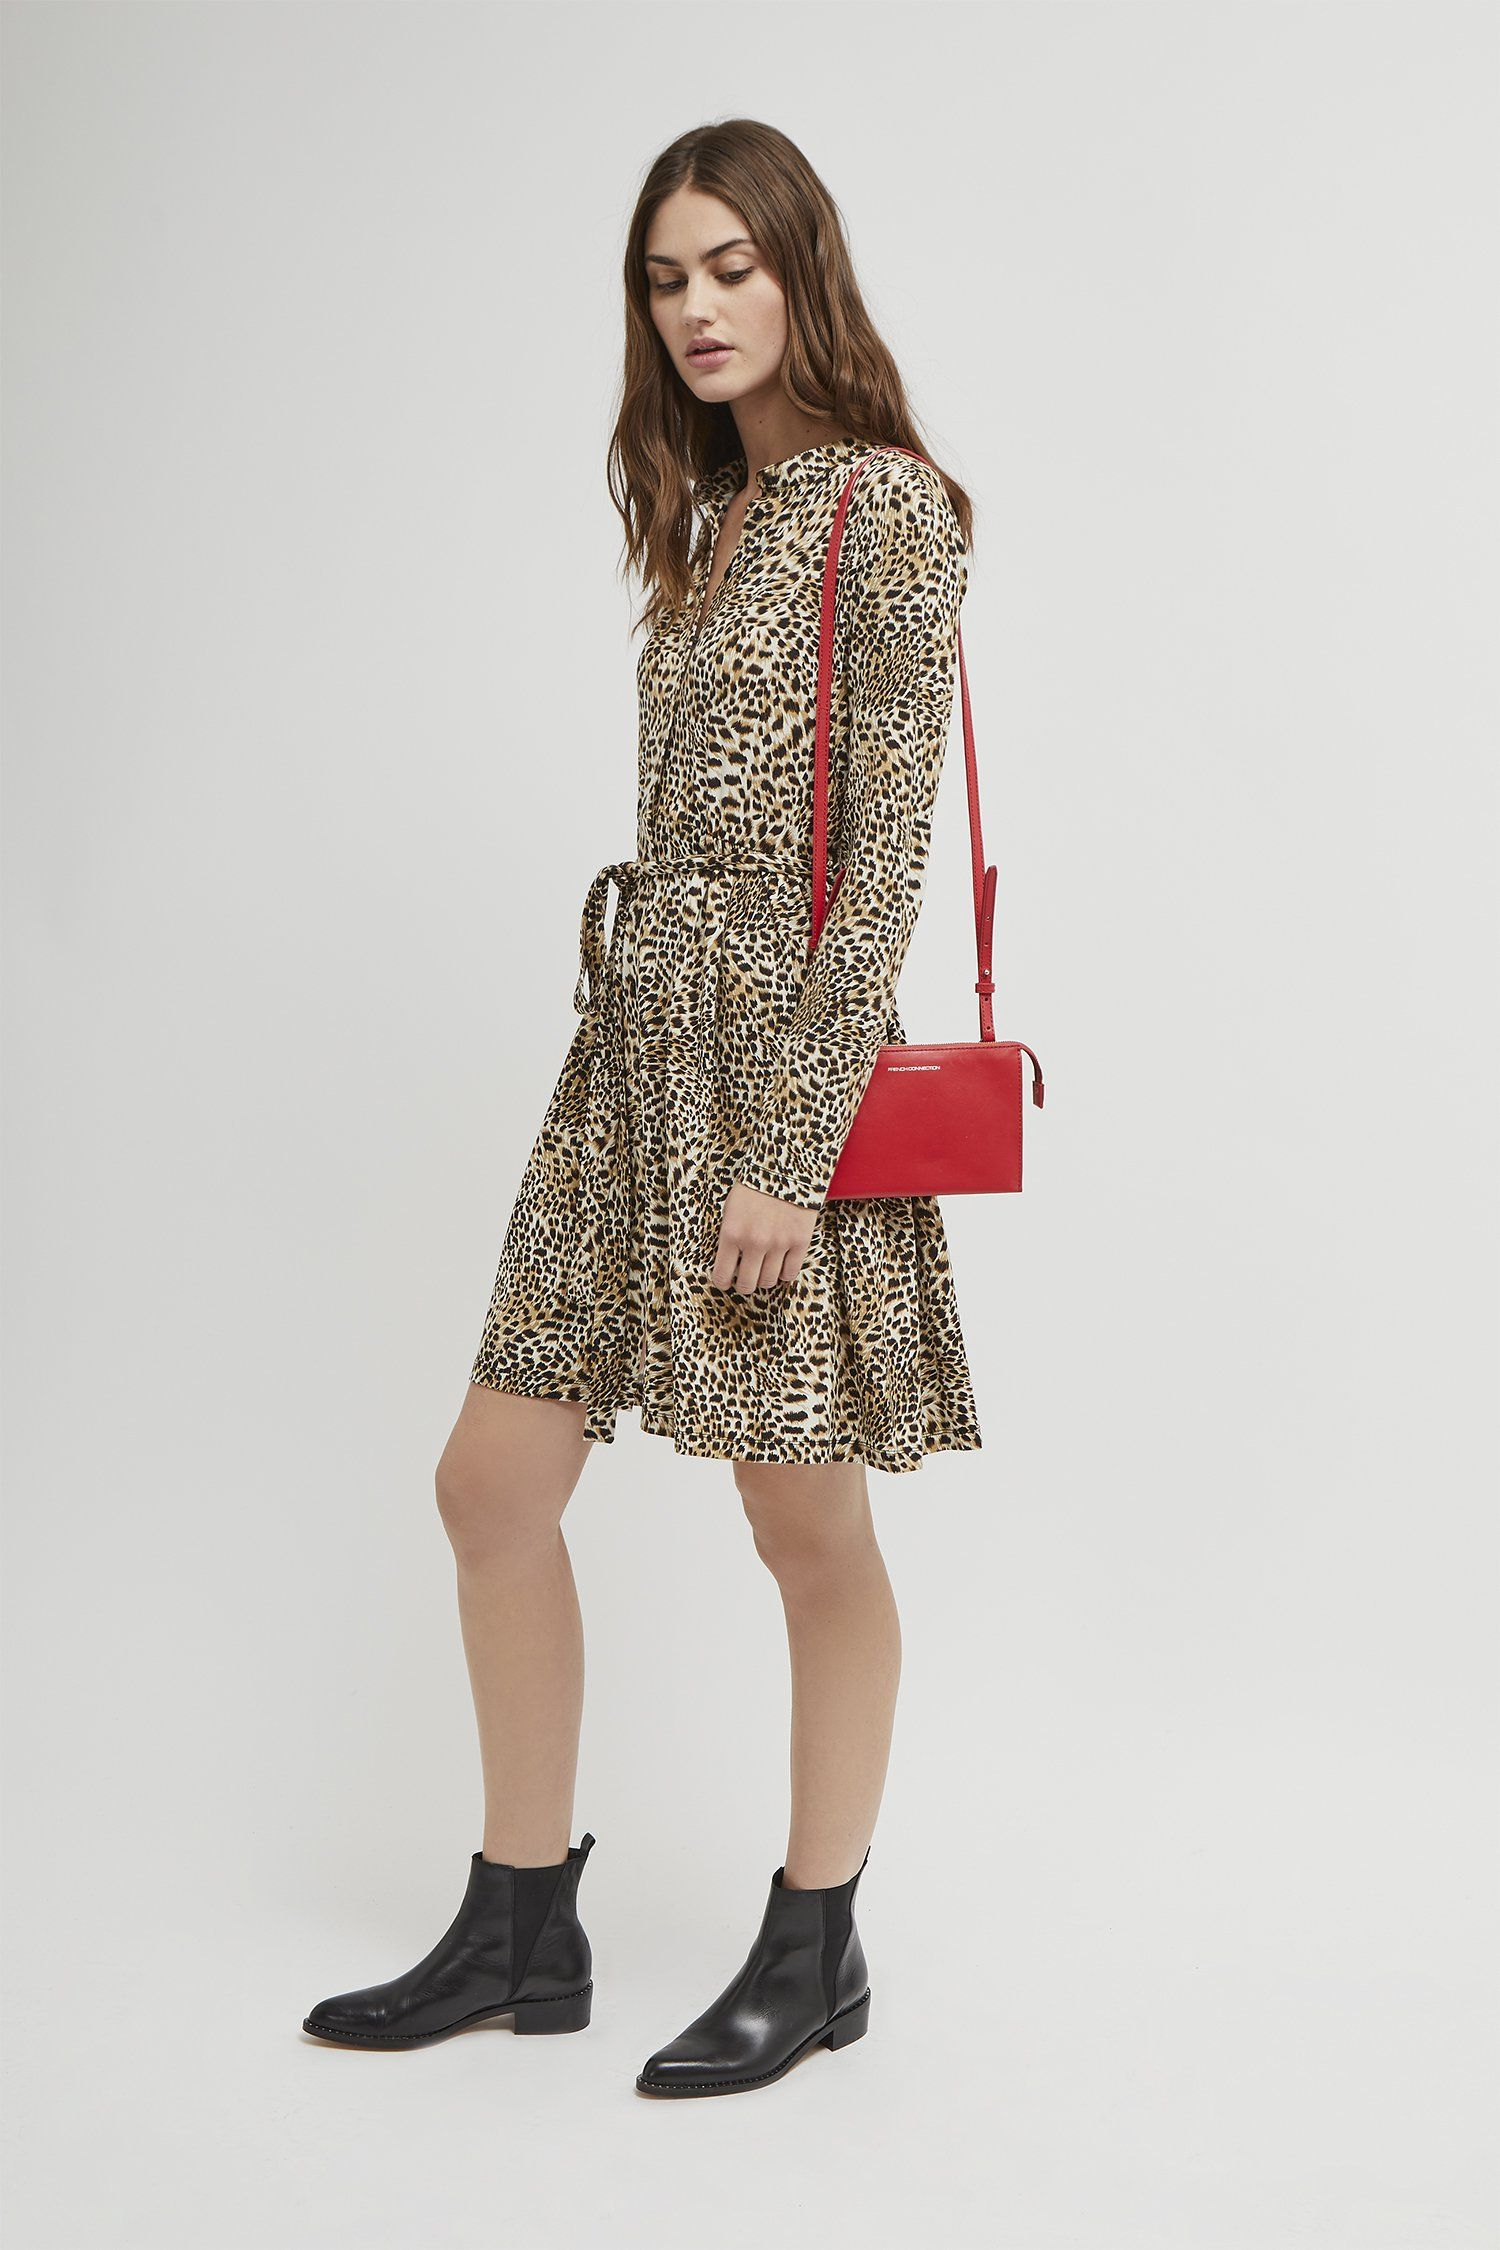 bc598eea1c4 <ul> <li> Leopard print shirt dress</li> <li> Fabric: soft, light,  smooth</li> <li> Button front</li> <li> Tie waist</li> <li> Long  sleeves</li> <li> ...